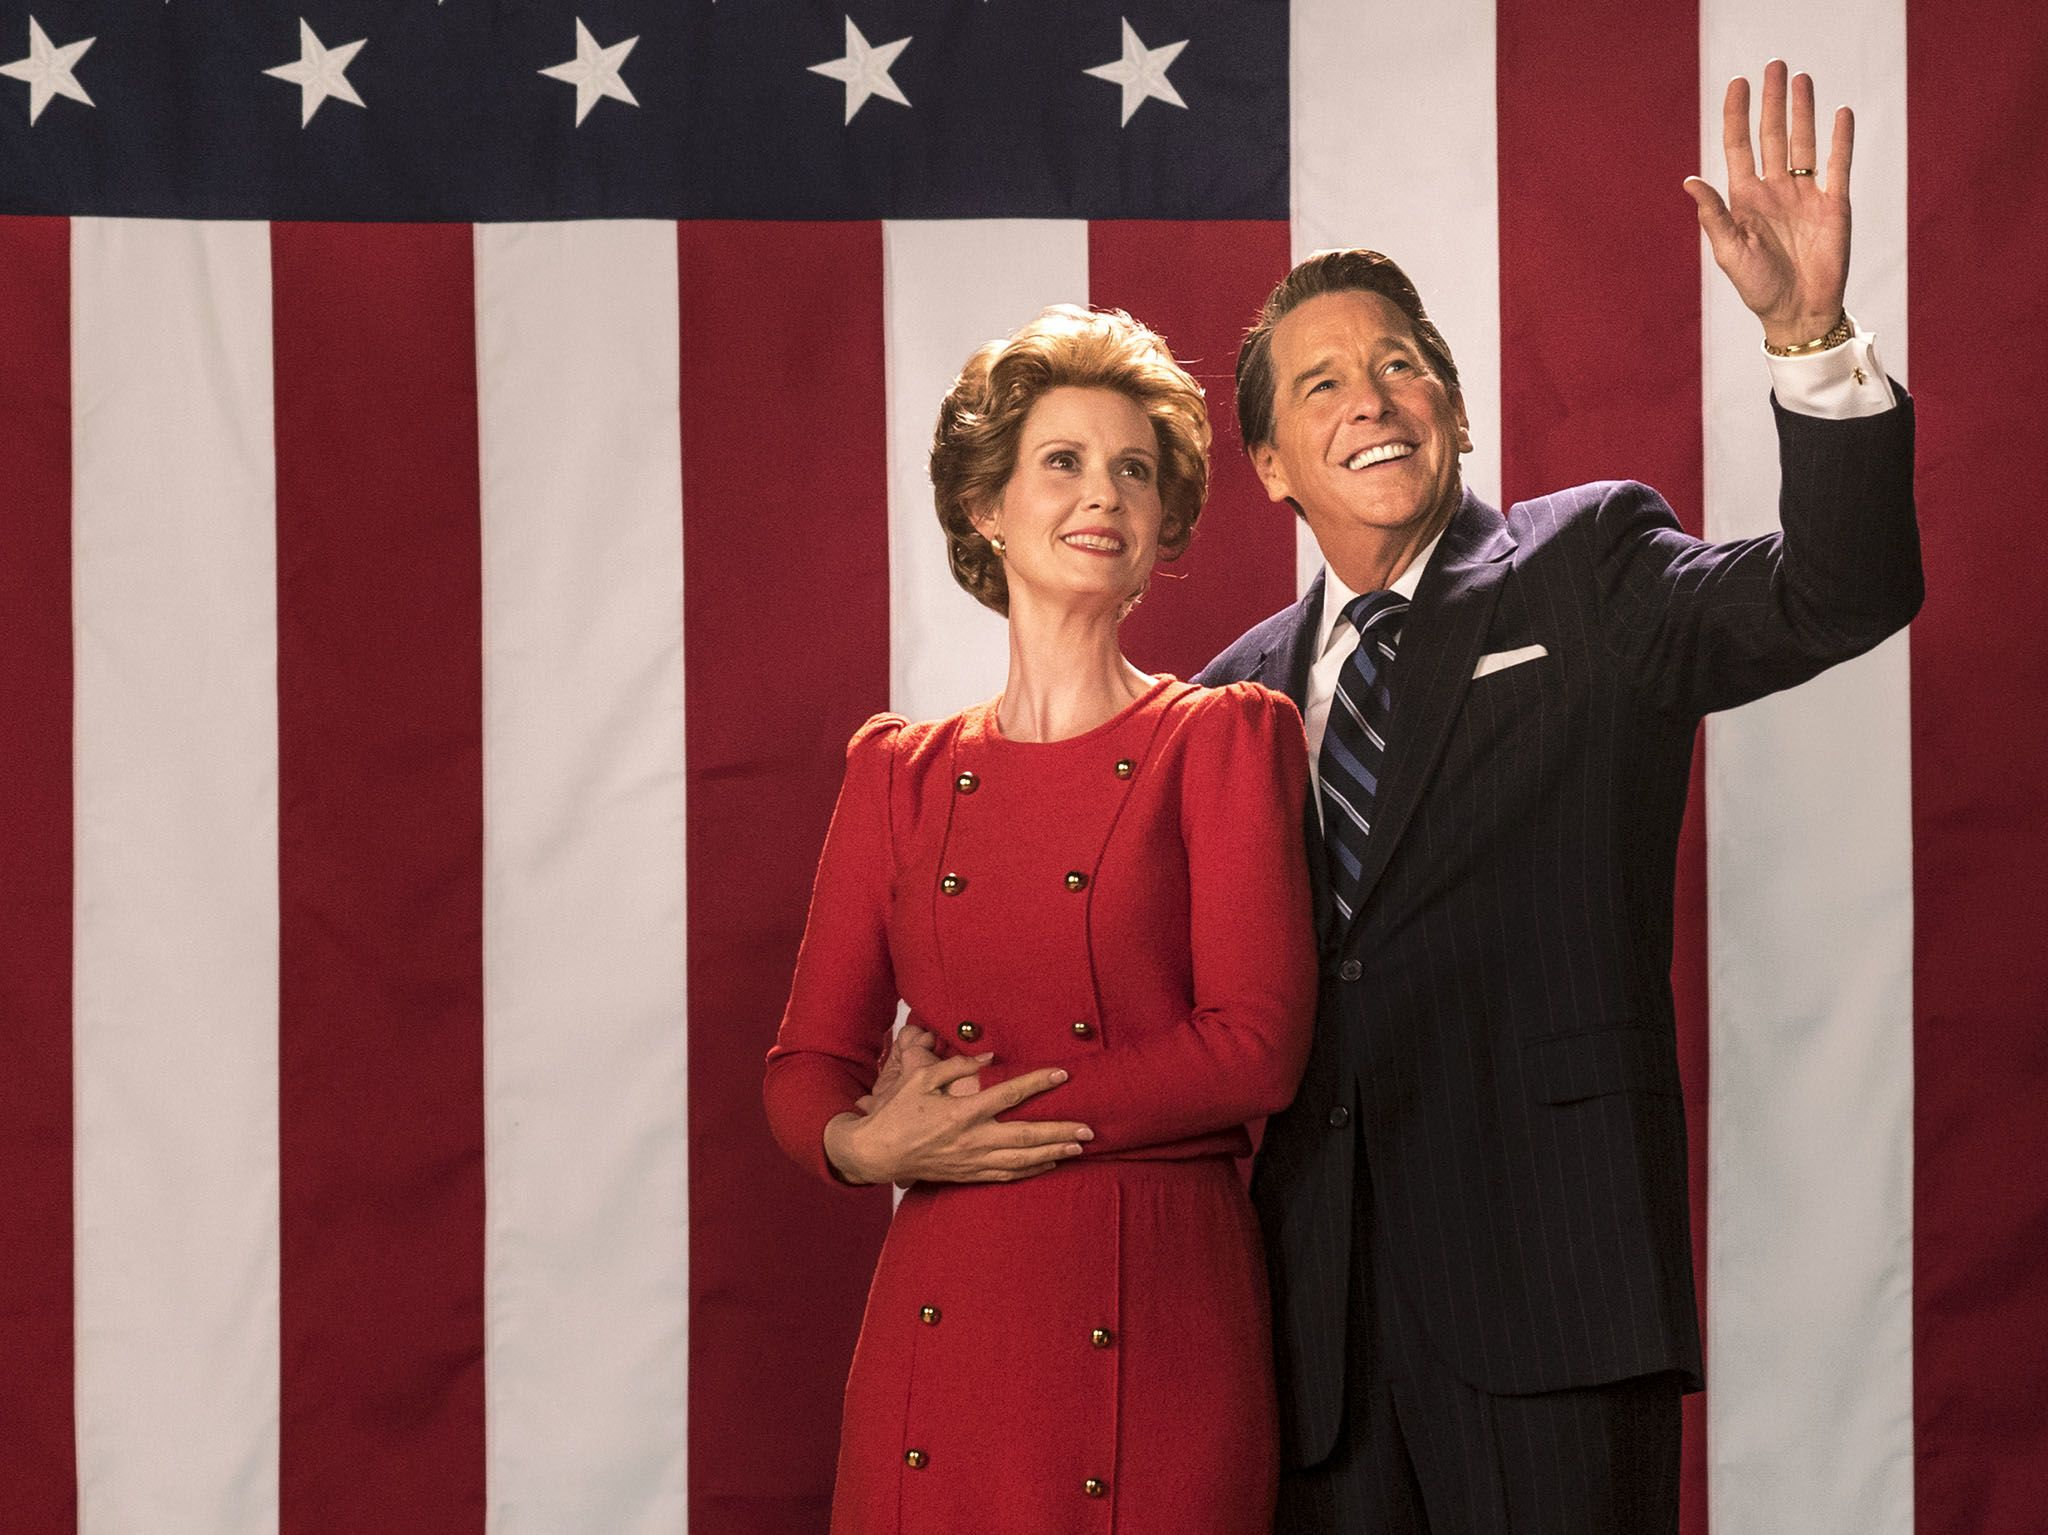 Cynthia Nixon (as Nancy Reagan) and Tim Matheson (as Ronald Reagan) in Killing Reagan. This... [Photo of the day - ژانویه 2017]